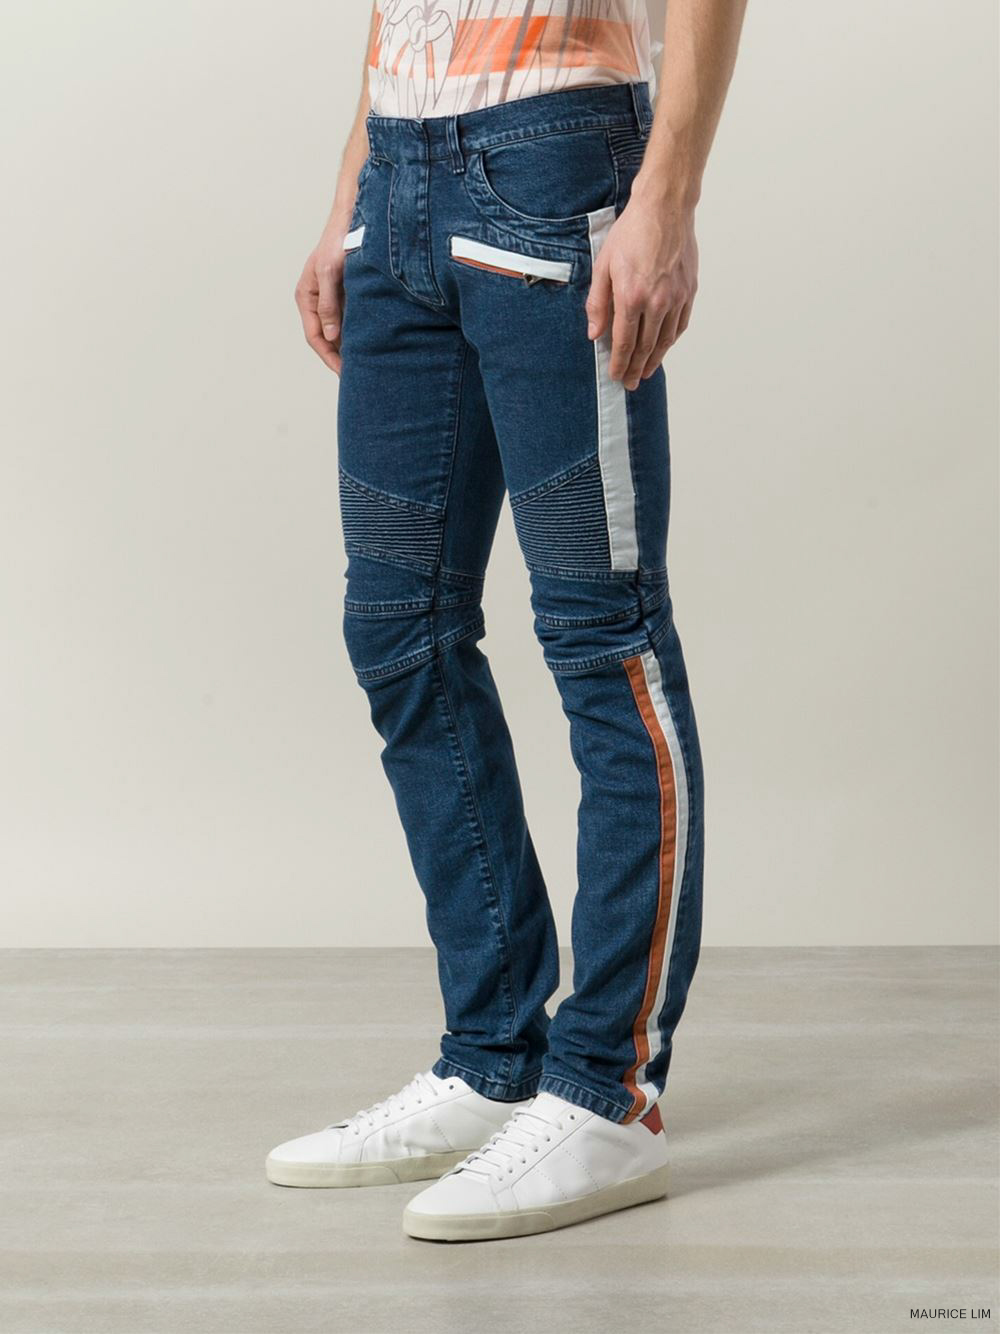 8f411581 Balmain Spring Summer 2015 Biker Jeans and Trousers Size Guide – Second  Kulture